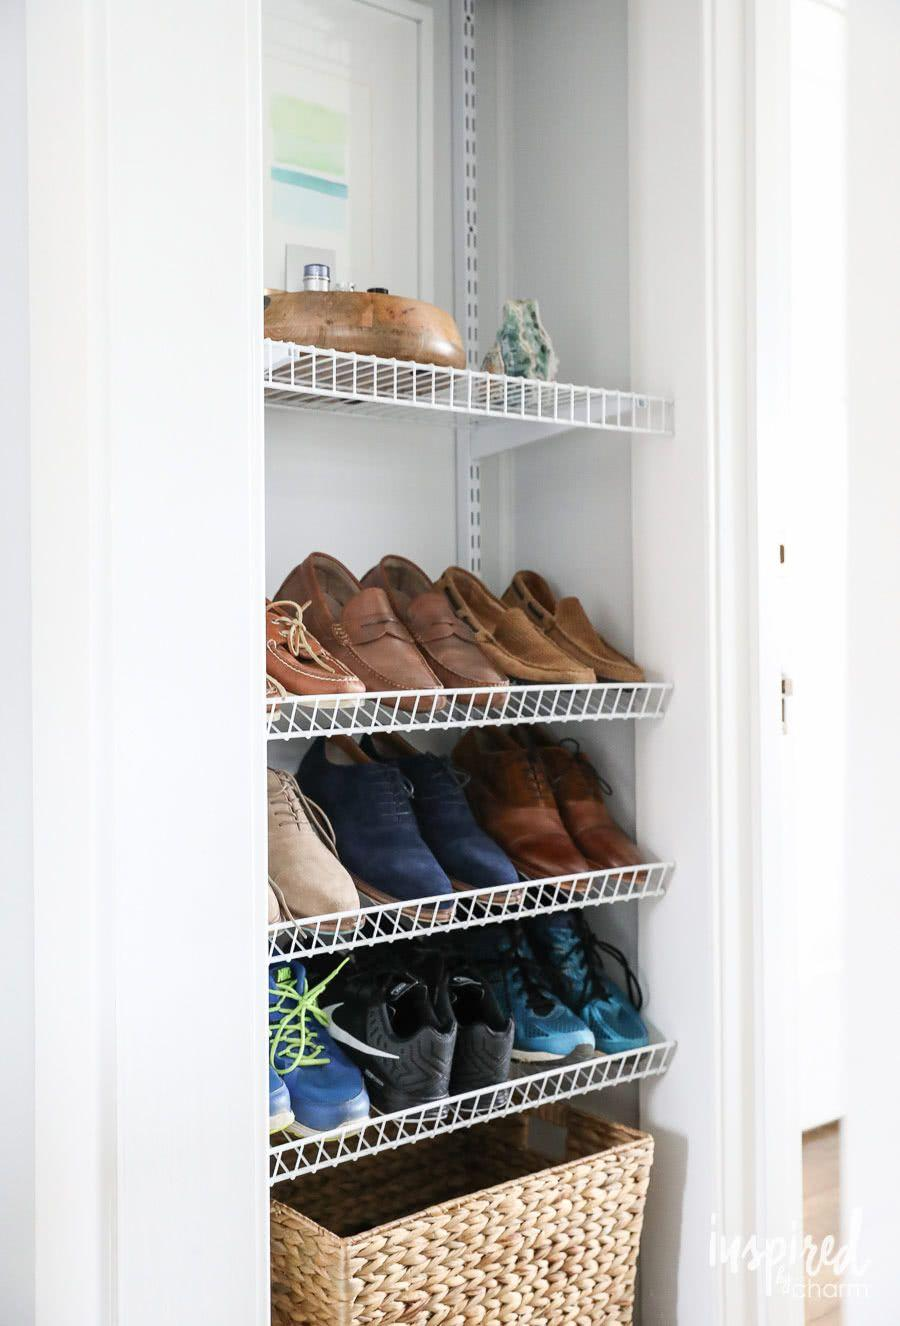 60 ideas and tips on how to organize shoes 58